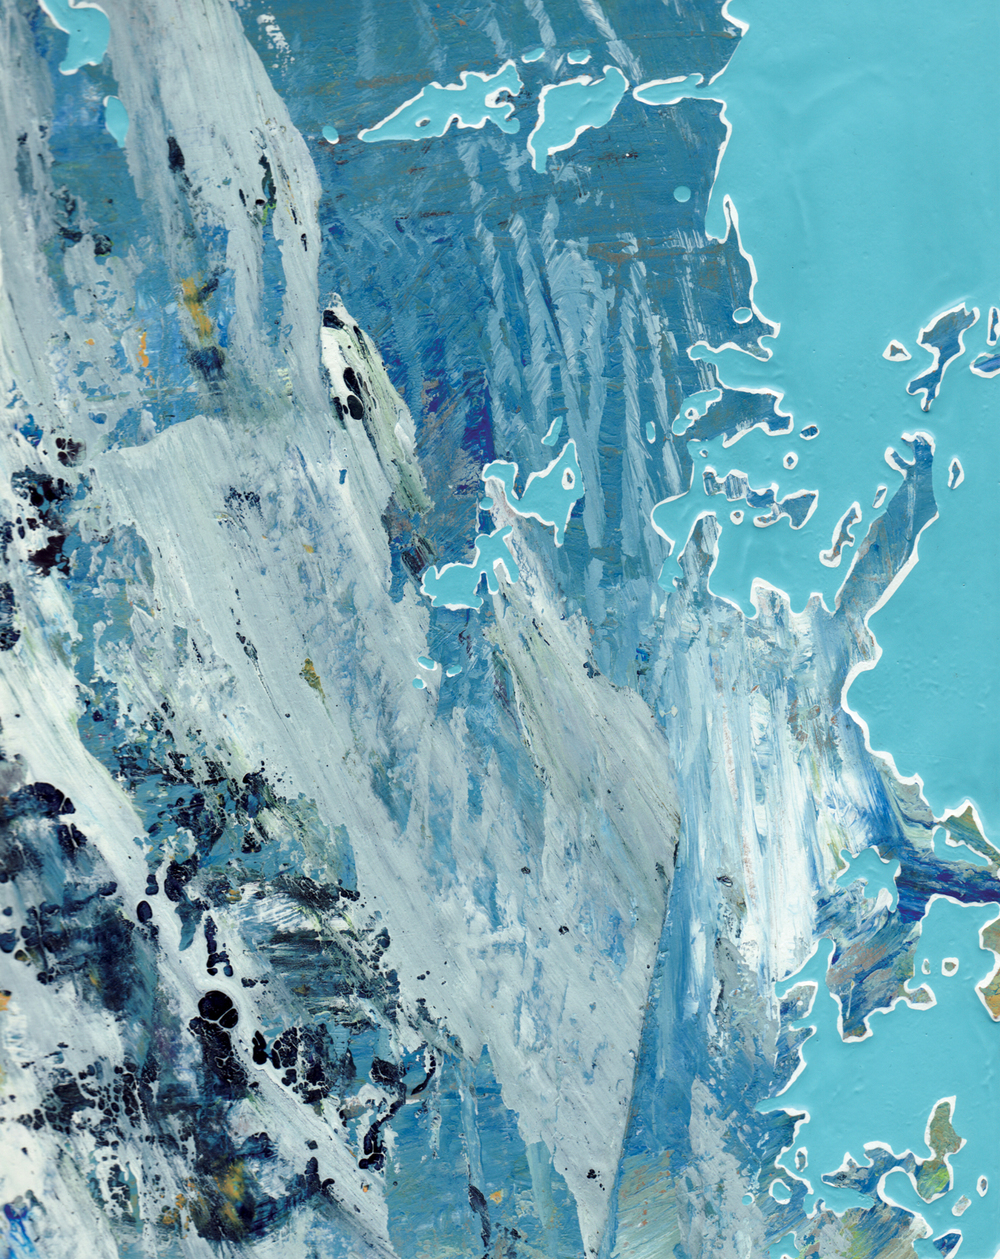 """Glacier Melt"" Acrylic, Oil on Paper 9-5/8 in. x 7-5/8 in. 2013"